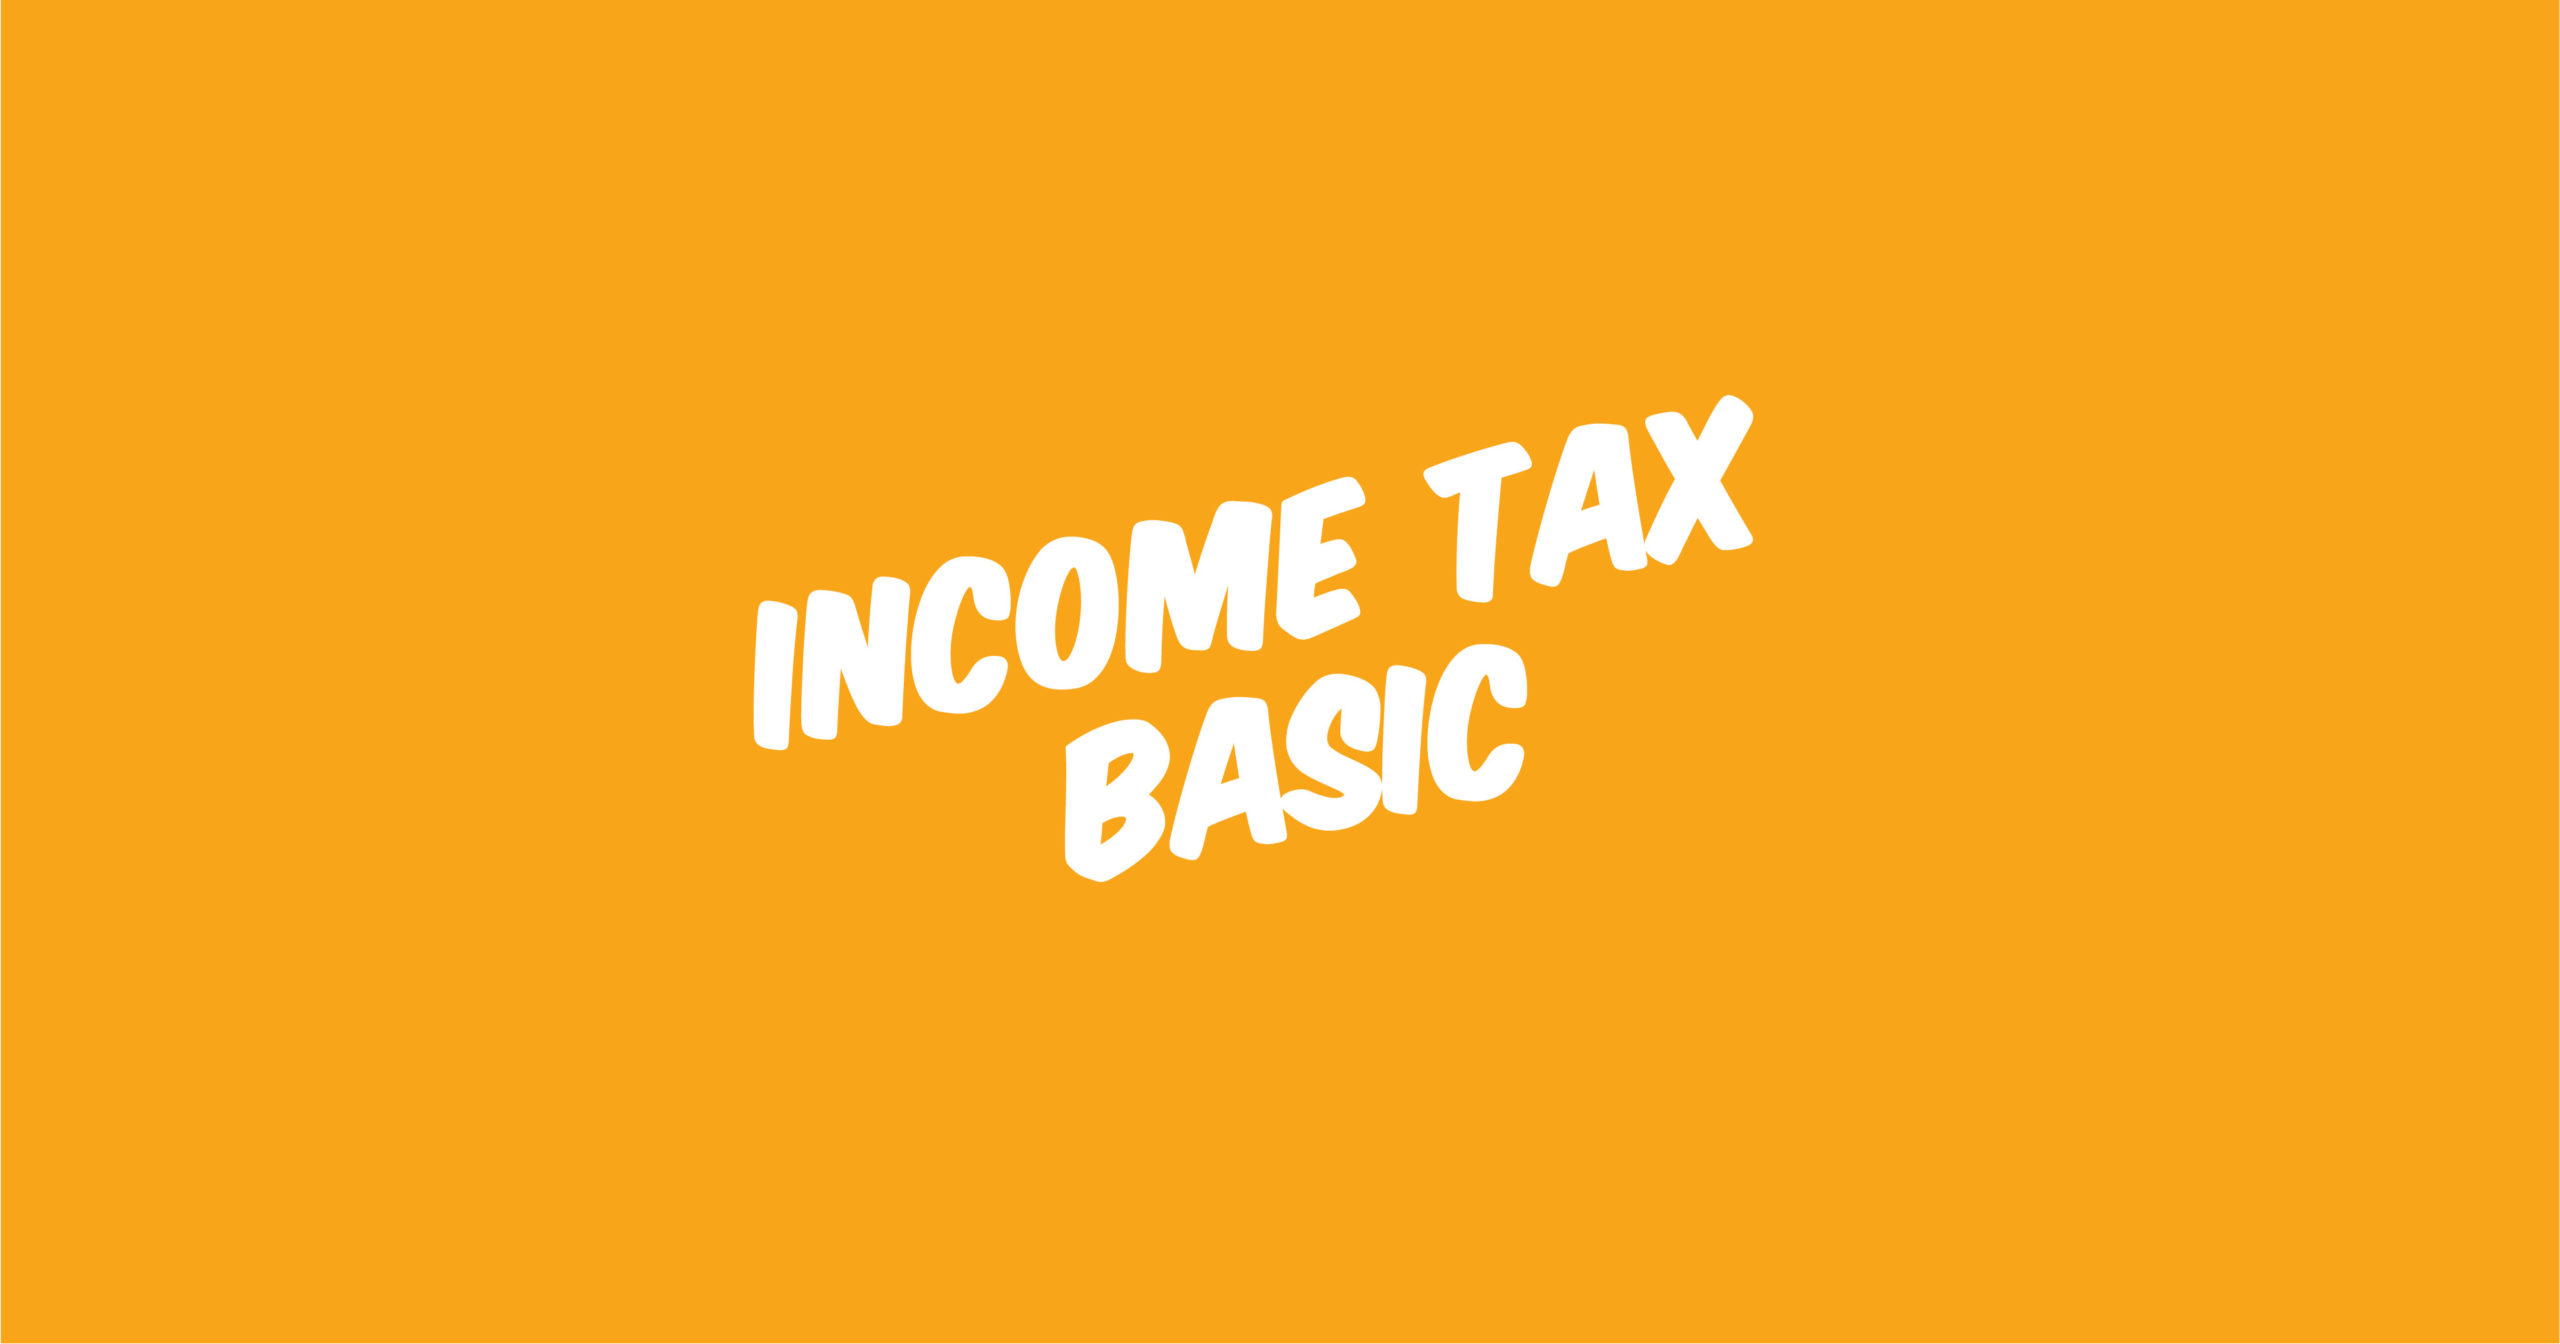 Income Tax Basic